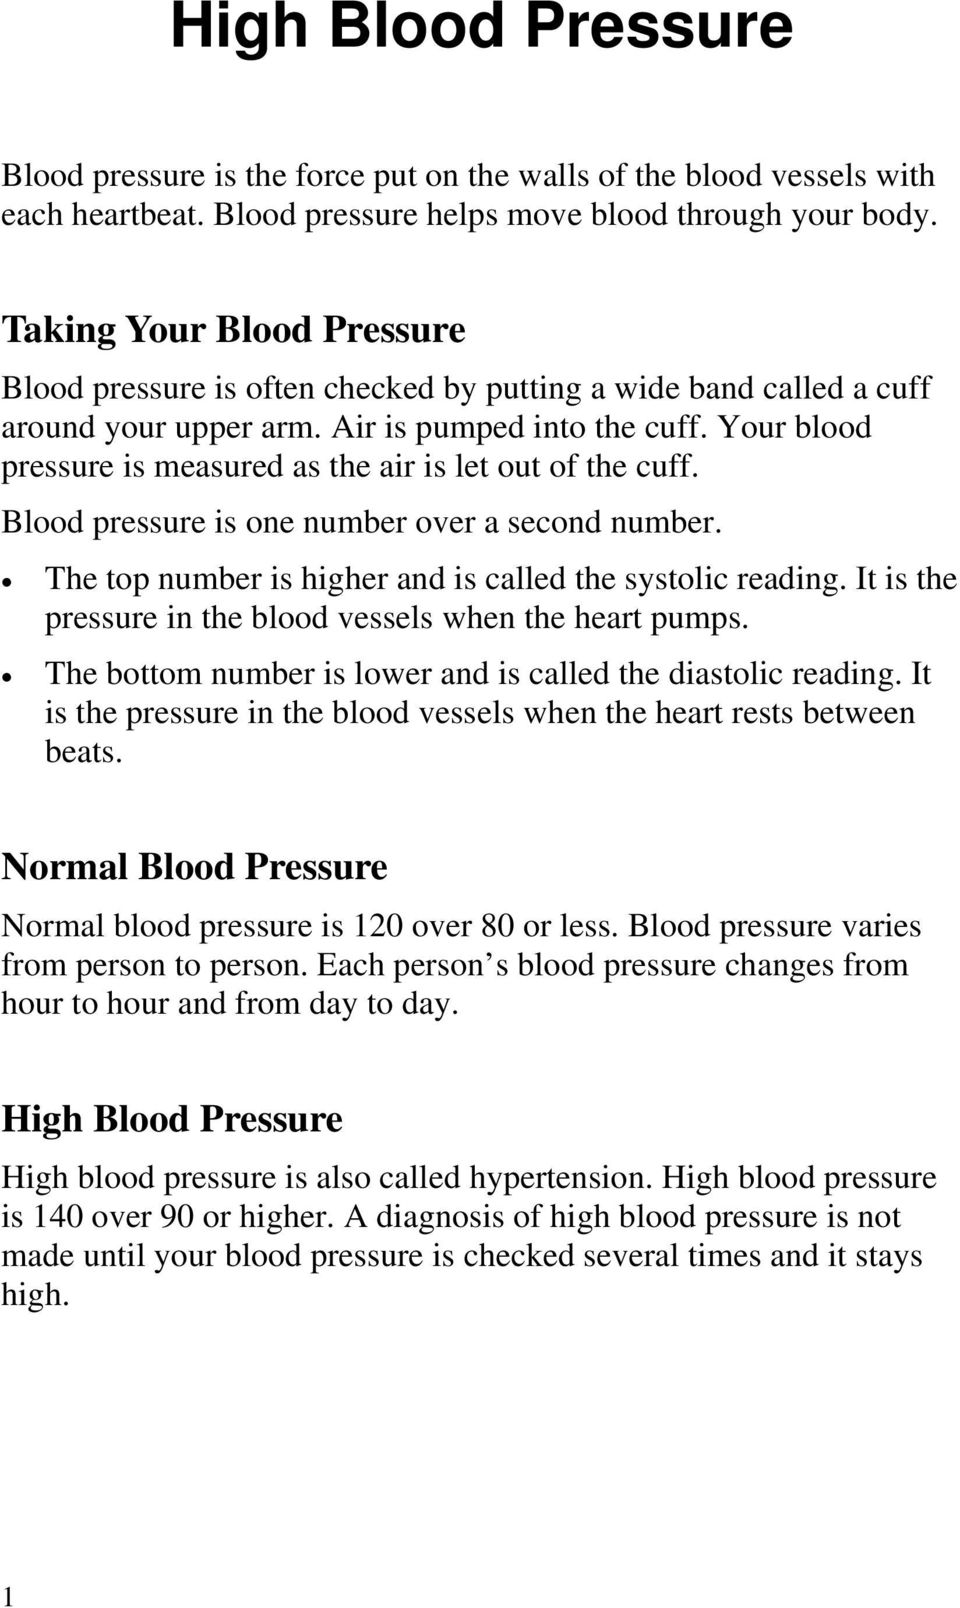 Your blood pressure is measured as the air is let out of the cuff. Blood pressure is one number over a second number. The top number is higher and is called the systolic reading.